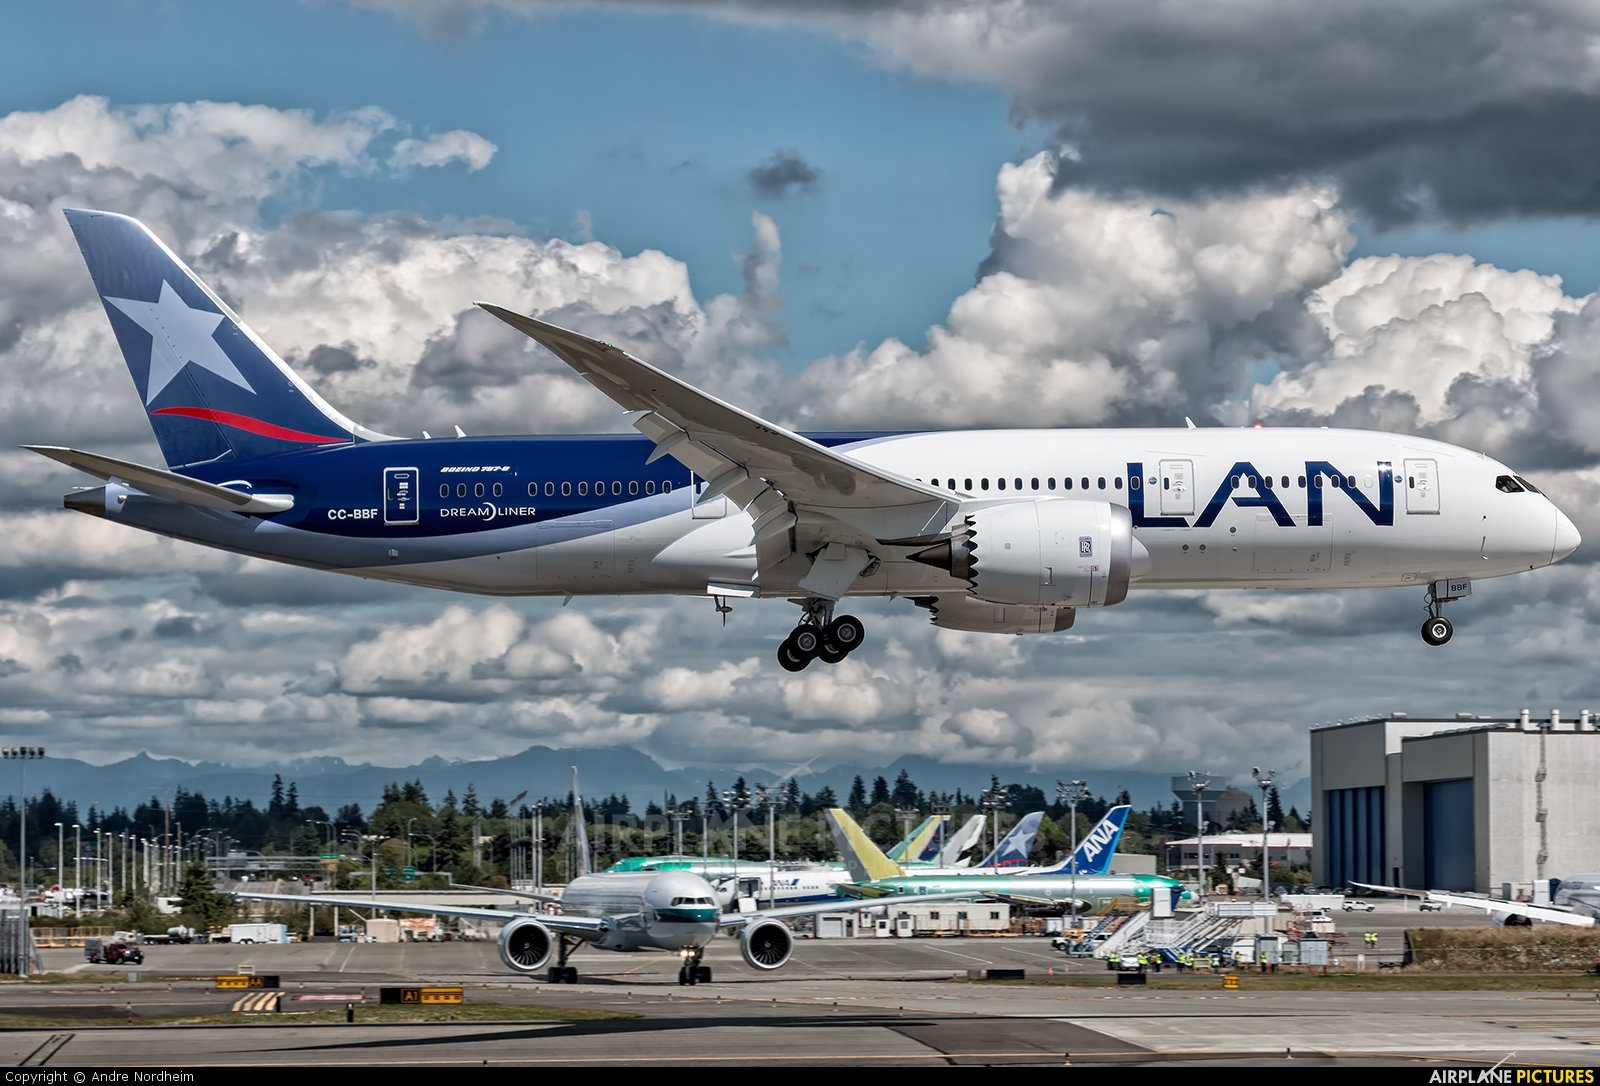 LAN Airlines CC-BBF aircraft at Everett - Snohomish County / Paine Field